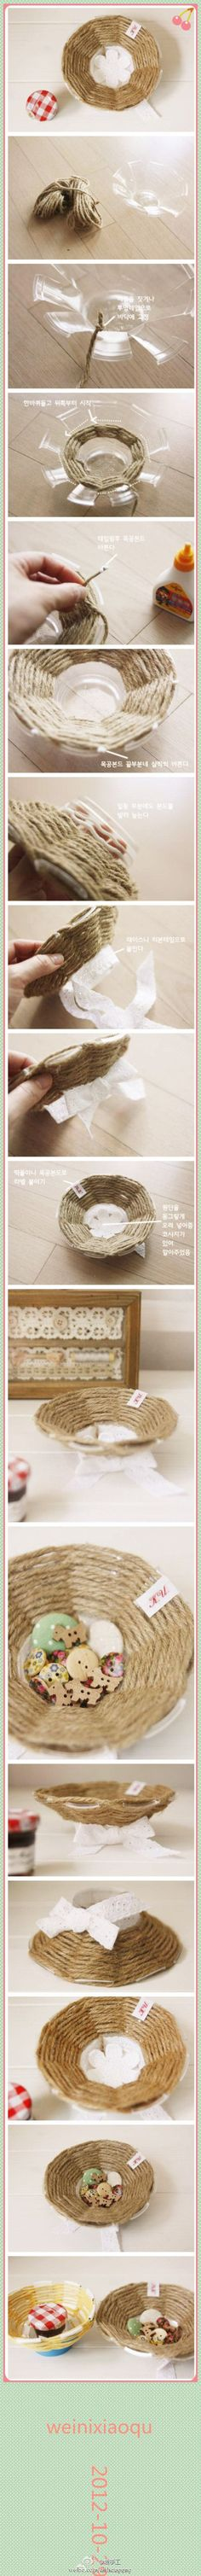 Plastic solo cup craft;  Looks like a cute DIY project, I can't read the foreign language, but I think wrapping it with yarn would look really pretty too